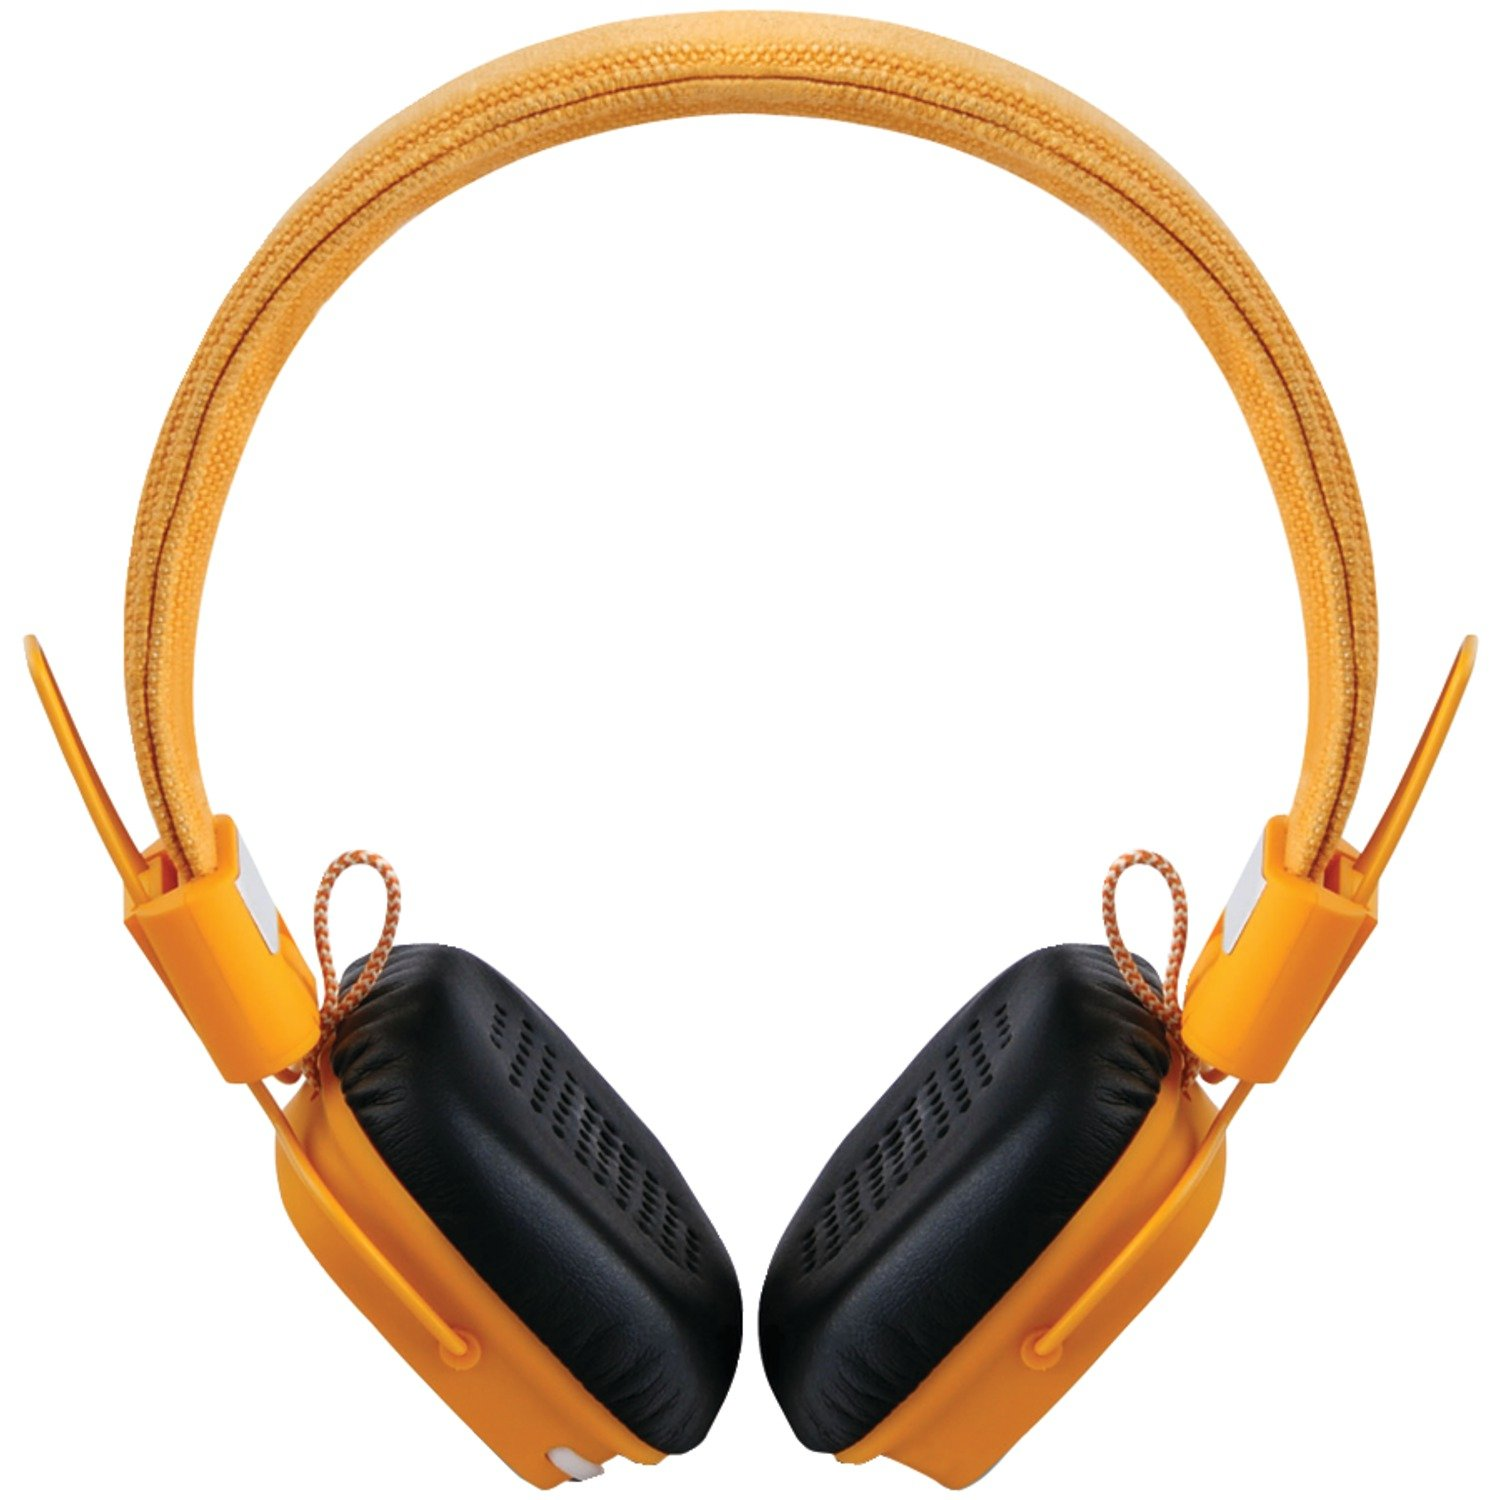 Outdoor Tech OT1400 Privates - Wireless Bluetooth Headphones with Touch Control (Mustard)